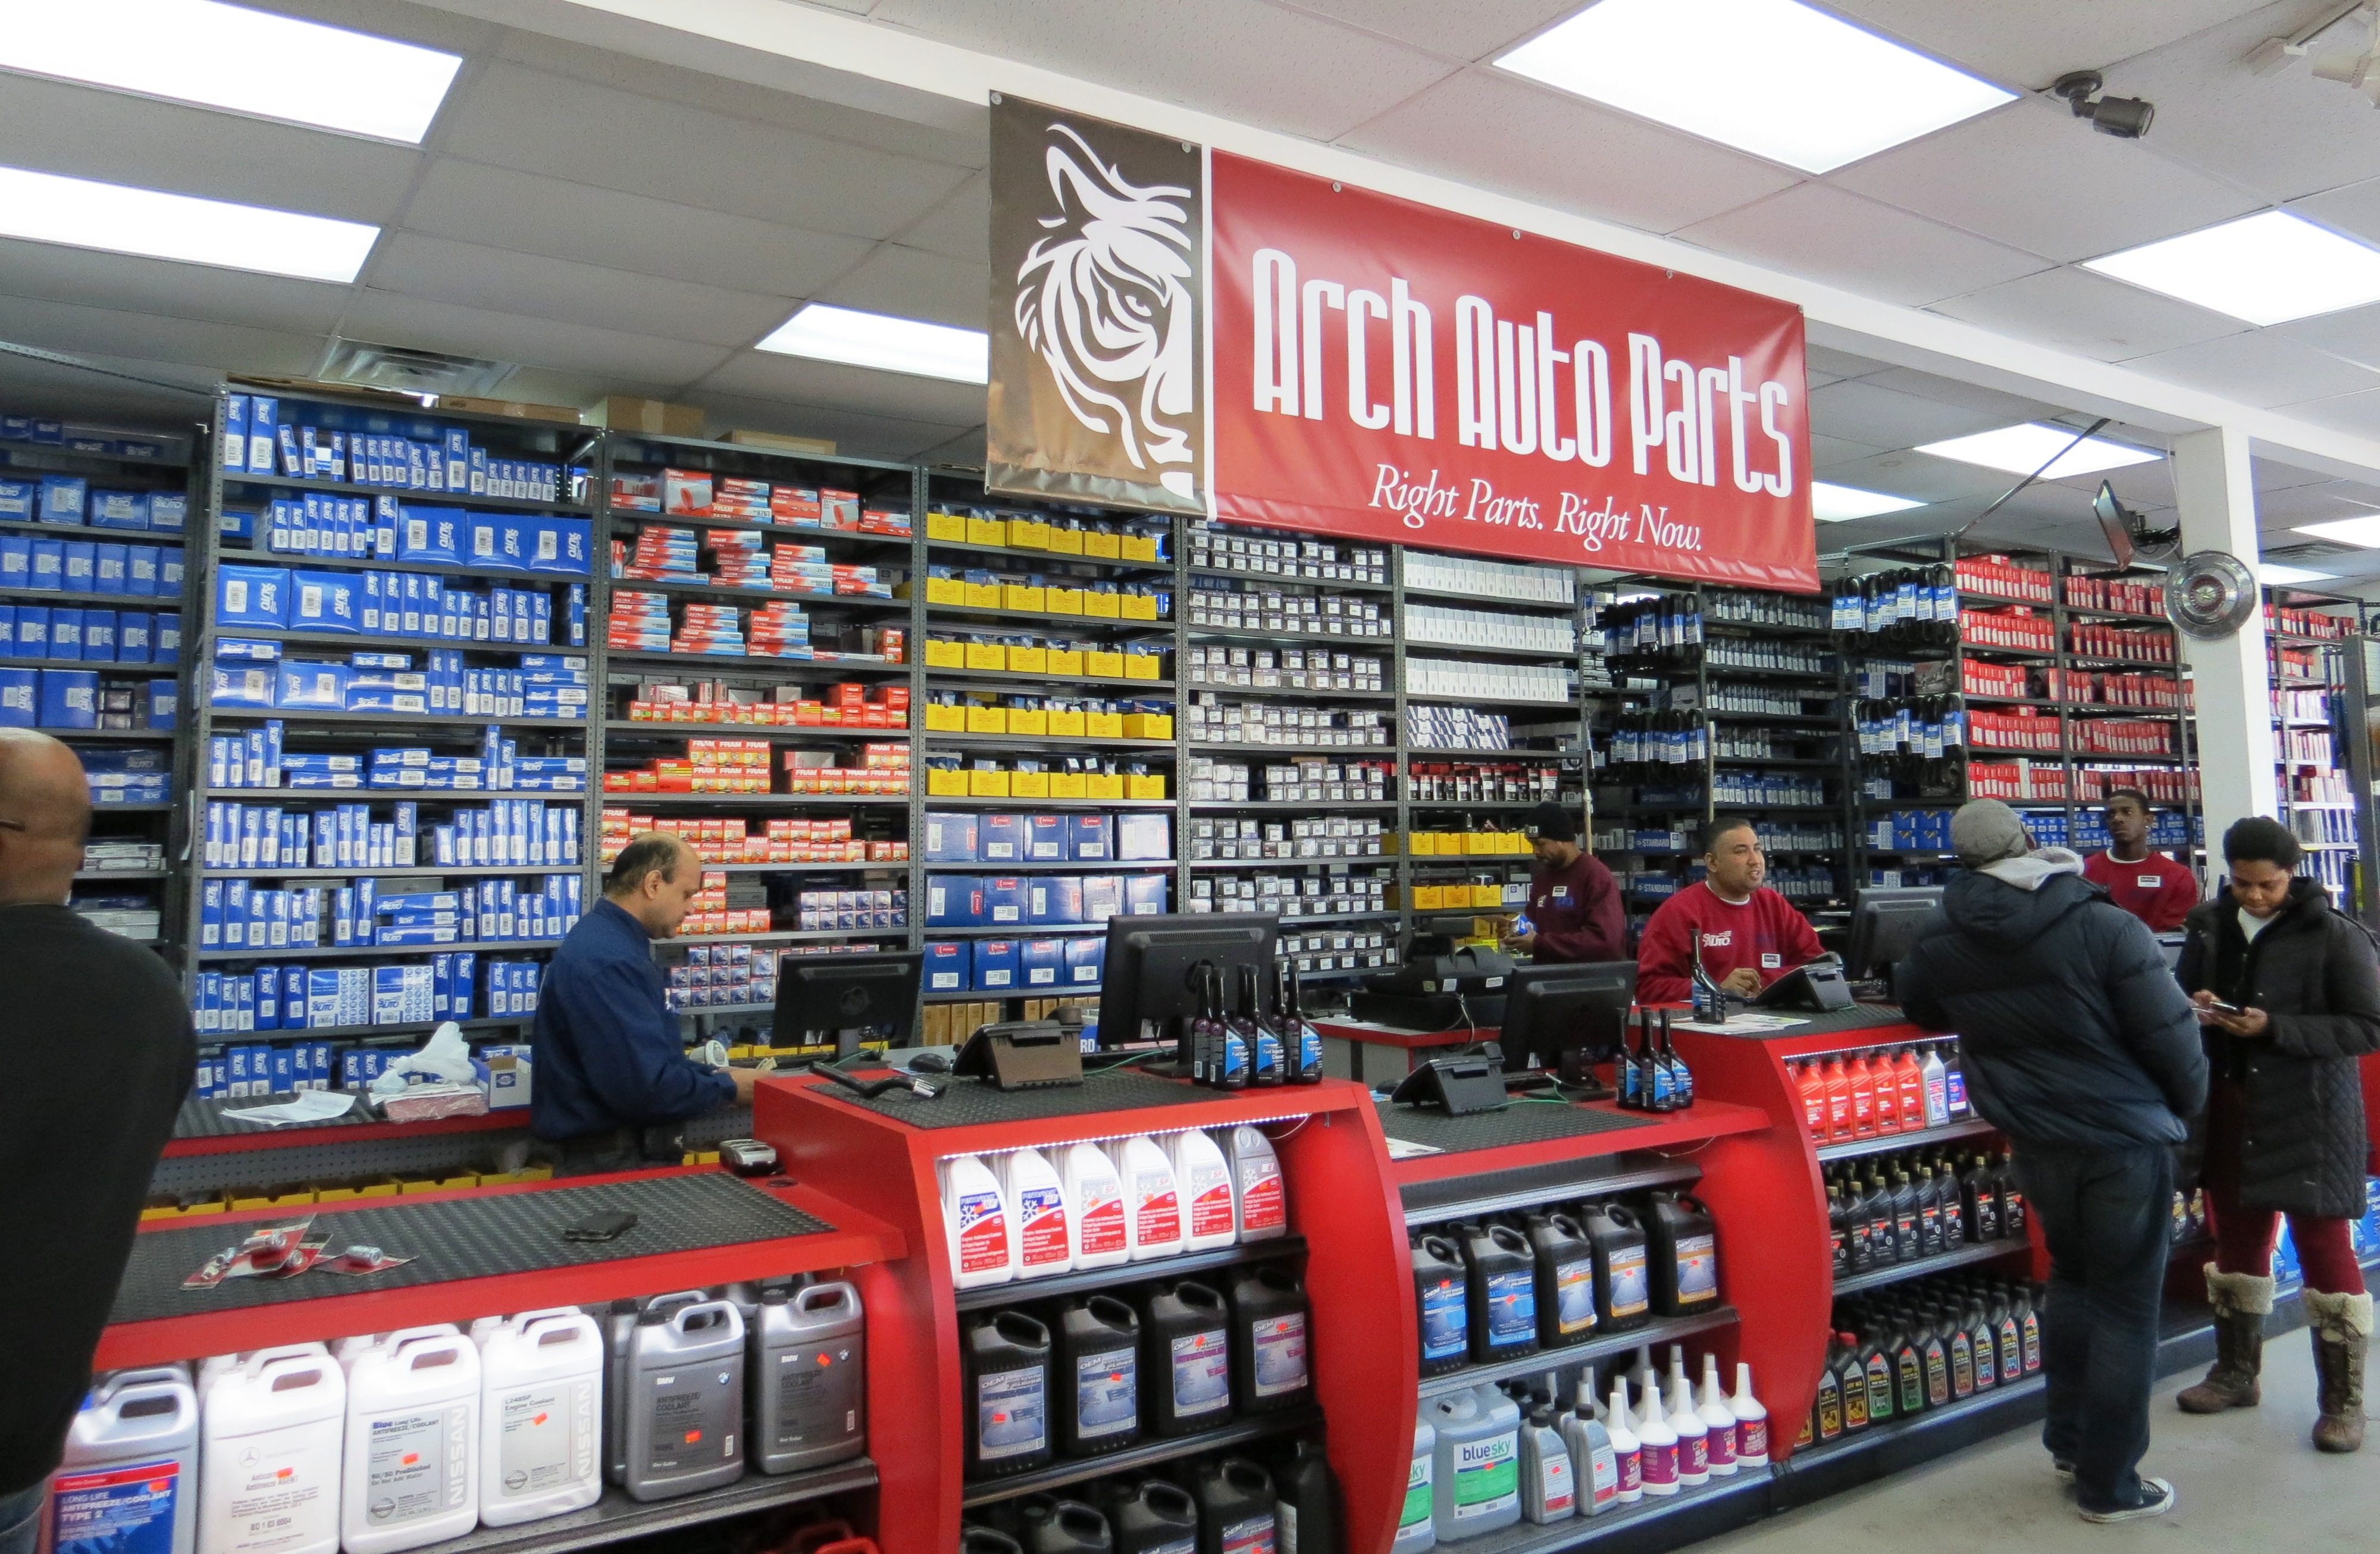 Auto Parts Shop >> New Arch Auto Parts Store In Queens Ny Provides Exact